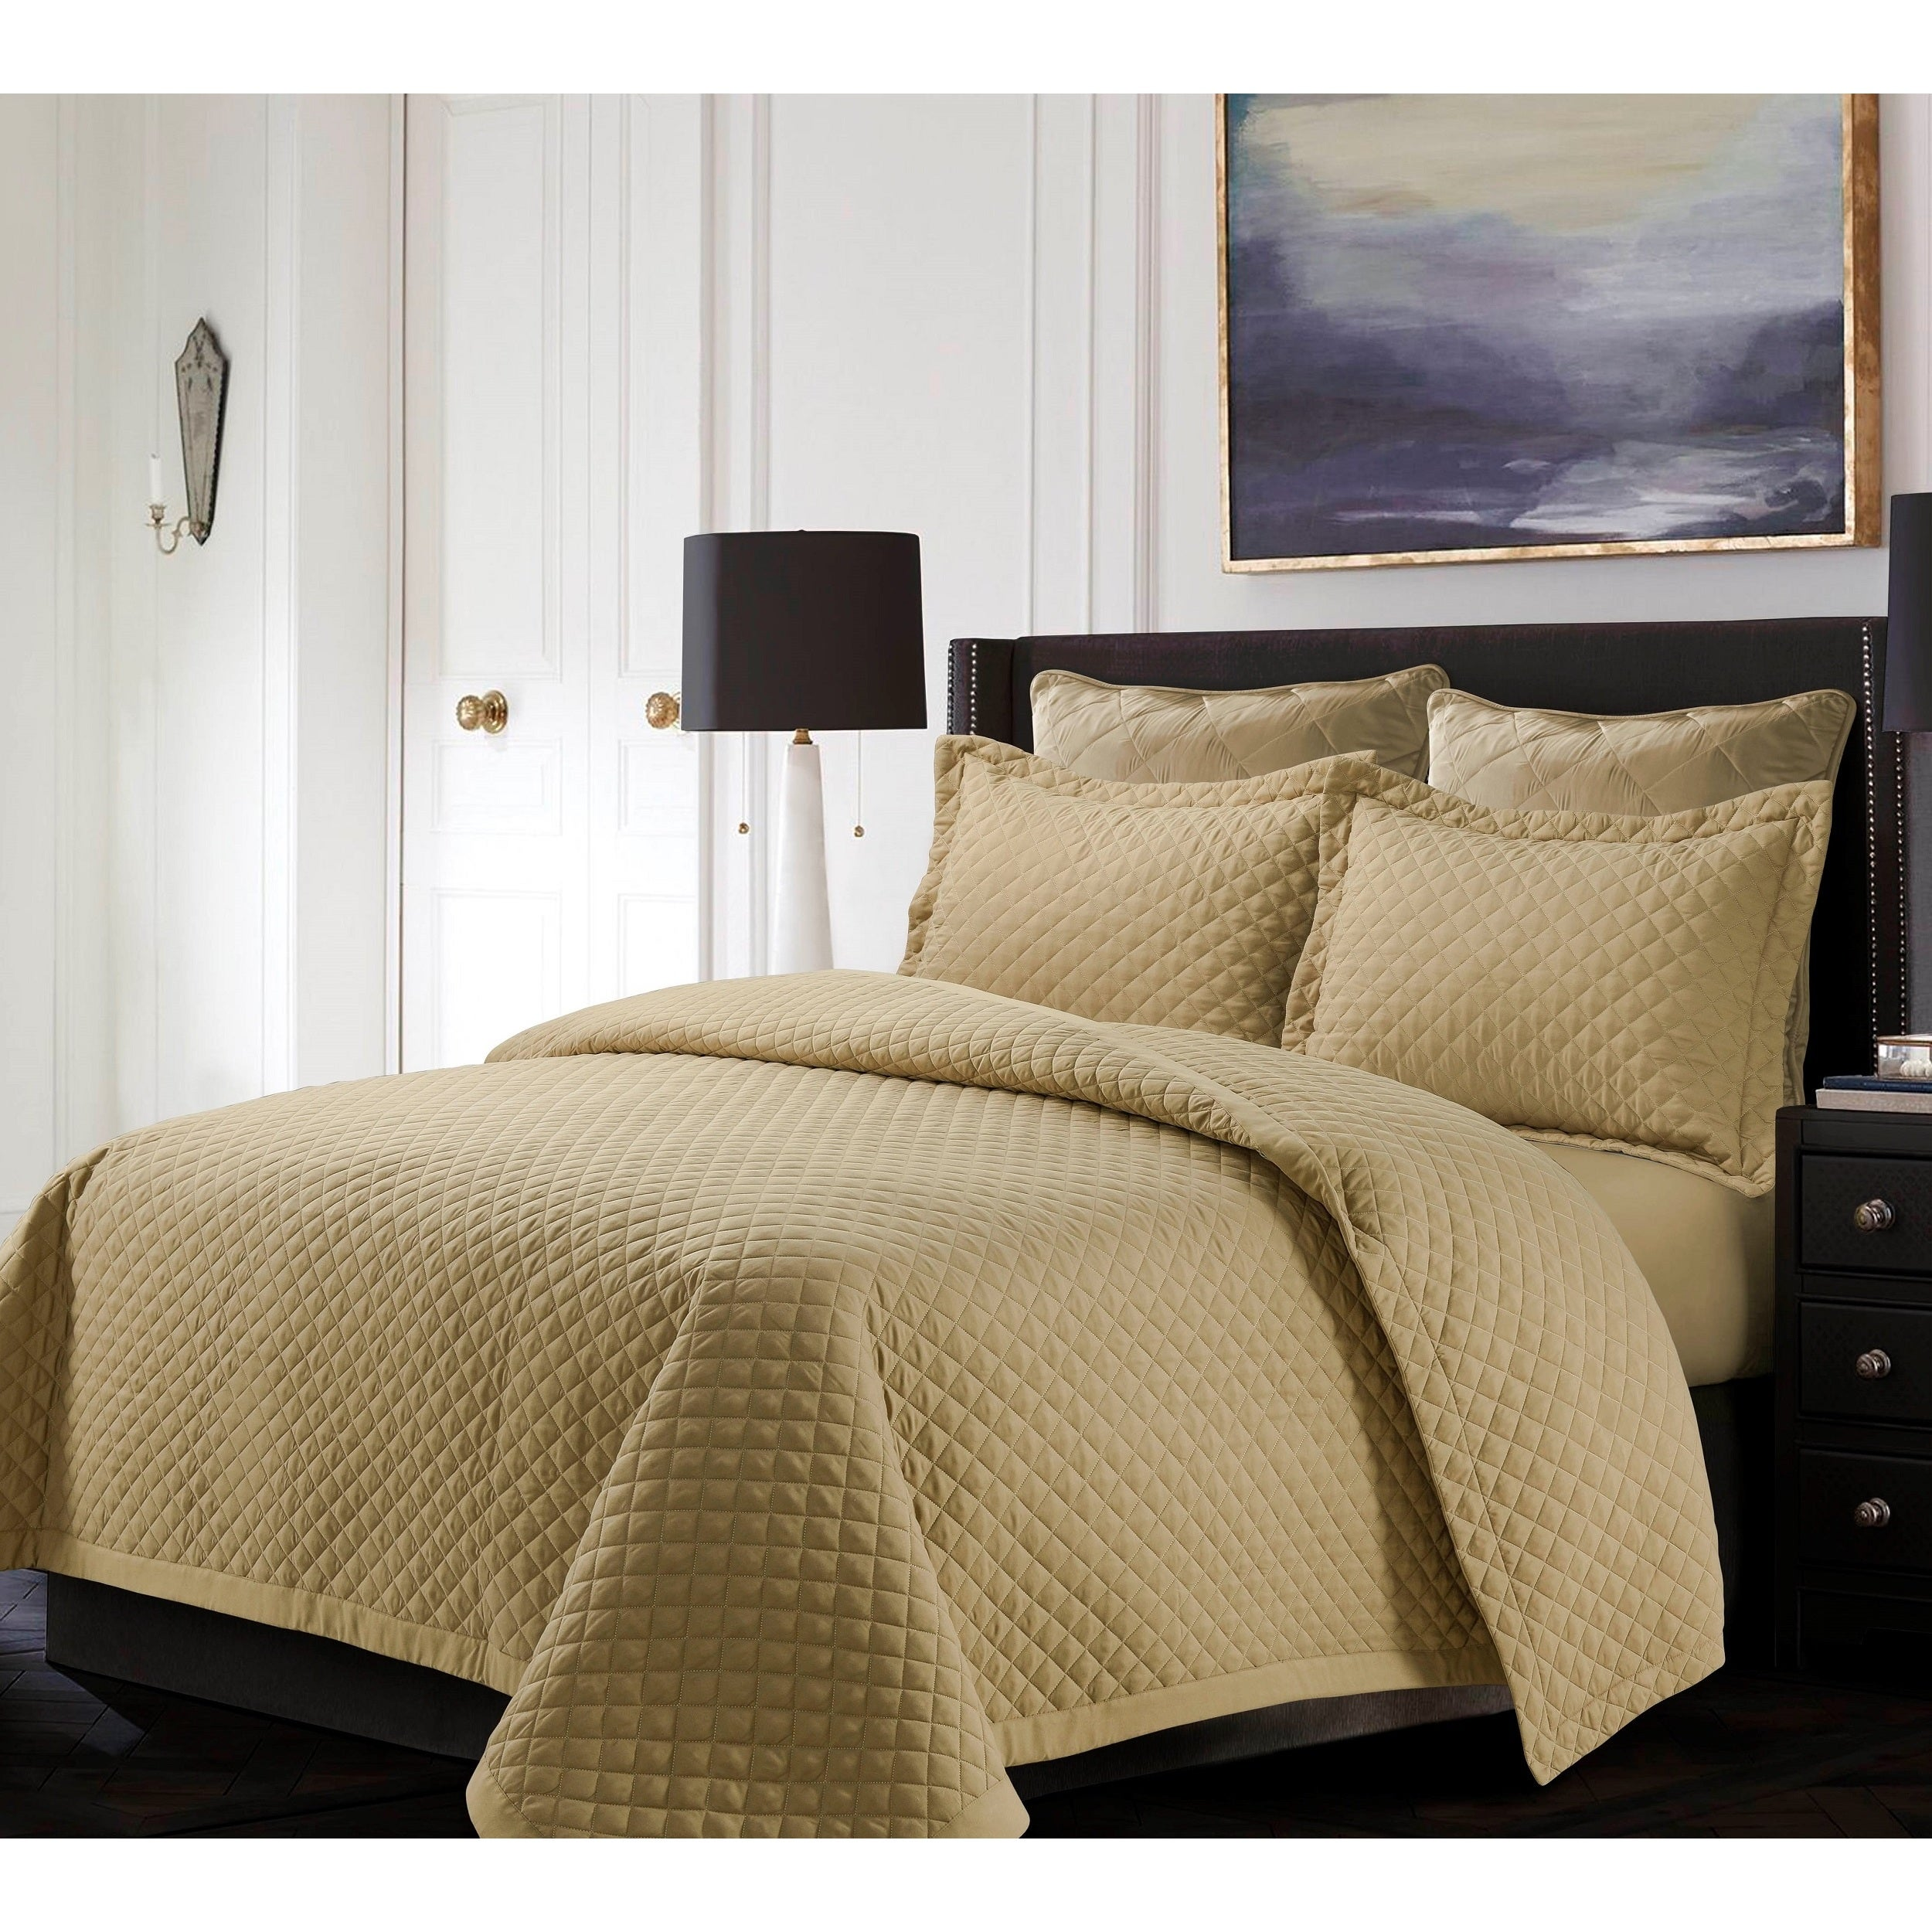 allure flounce extra bedding set oversized comforter decoration large quilt king bedspread quilts chenille day ruffled